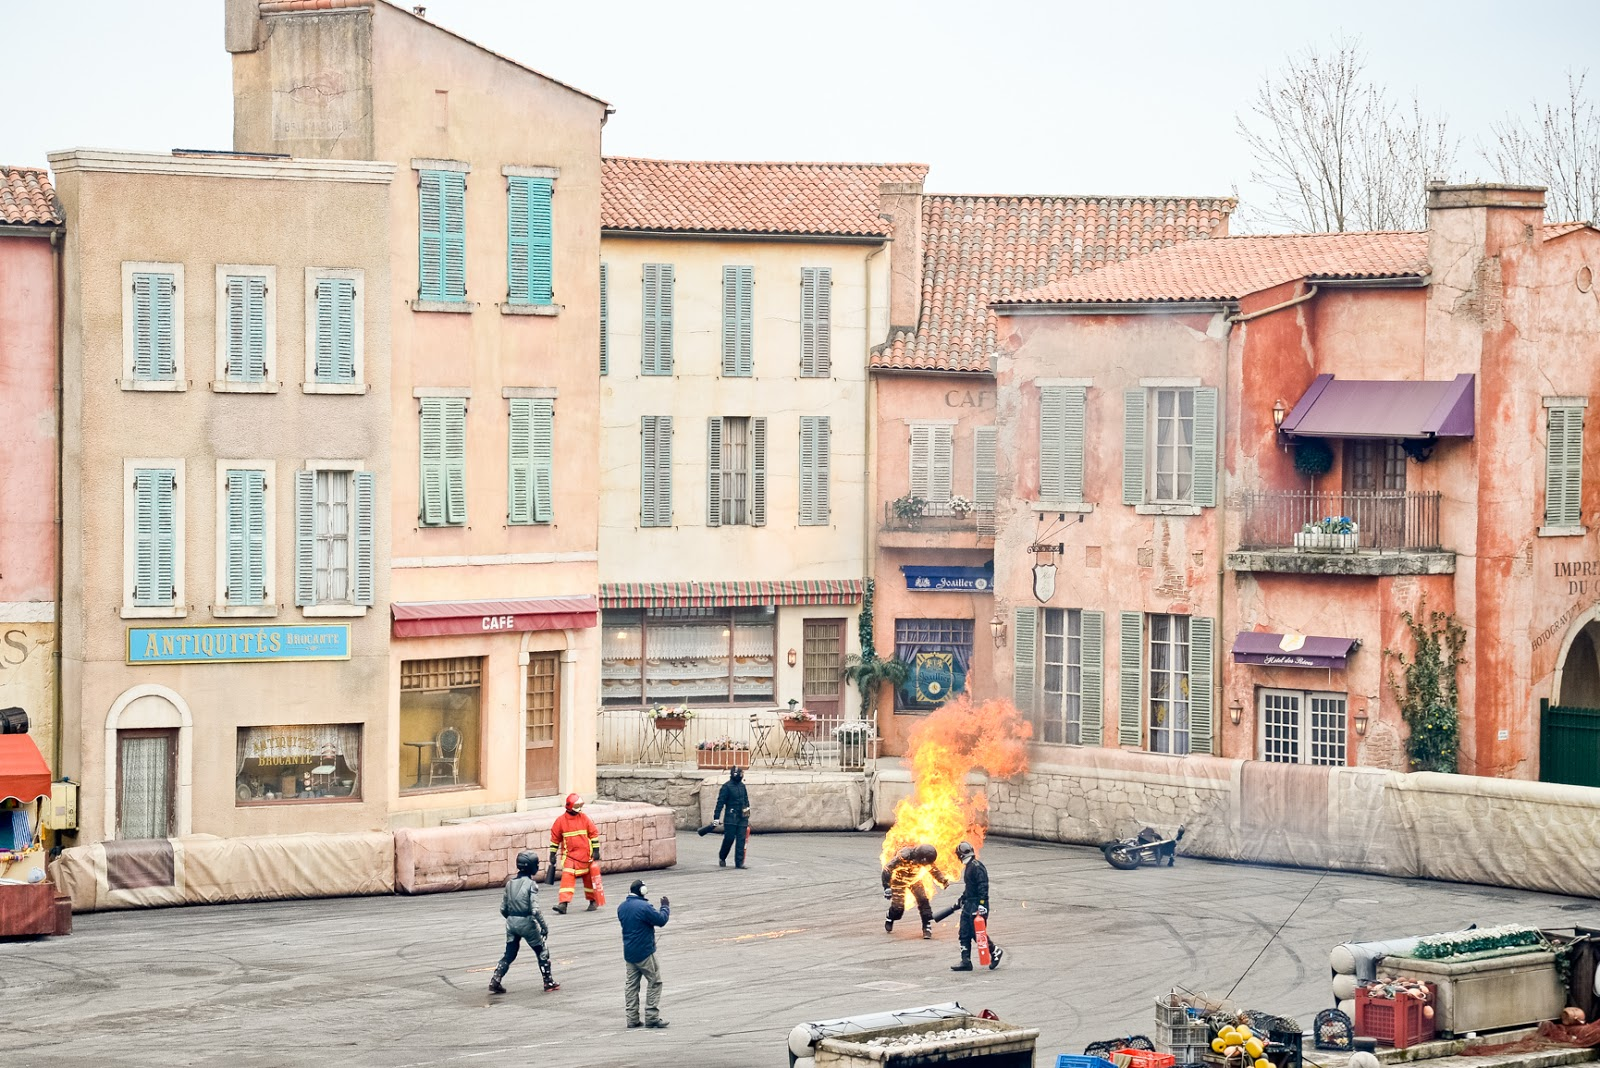 stunt show disneyland. first time at disneyland paris, disneyland paris travel blog, disneyland, disneyland paris highlights, disneyland paris must do, vegetarians at disneyland paris,